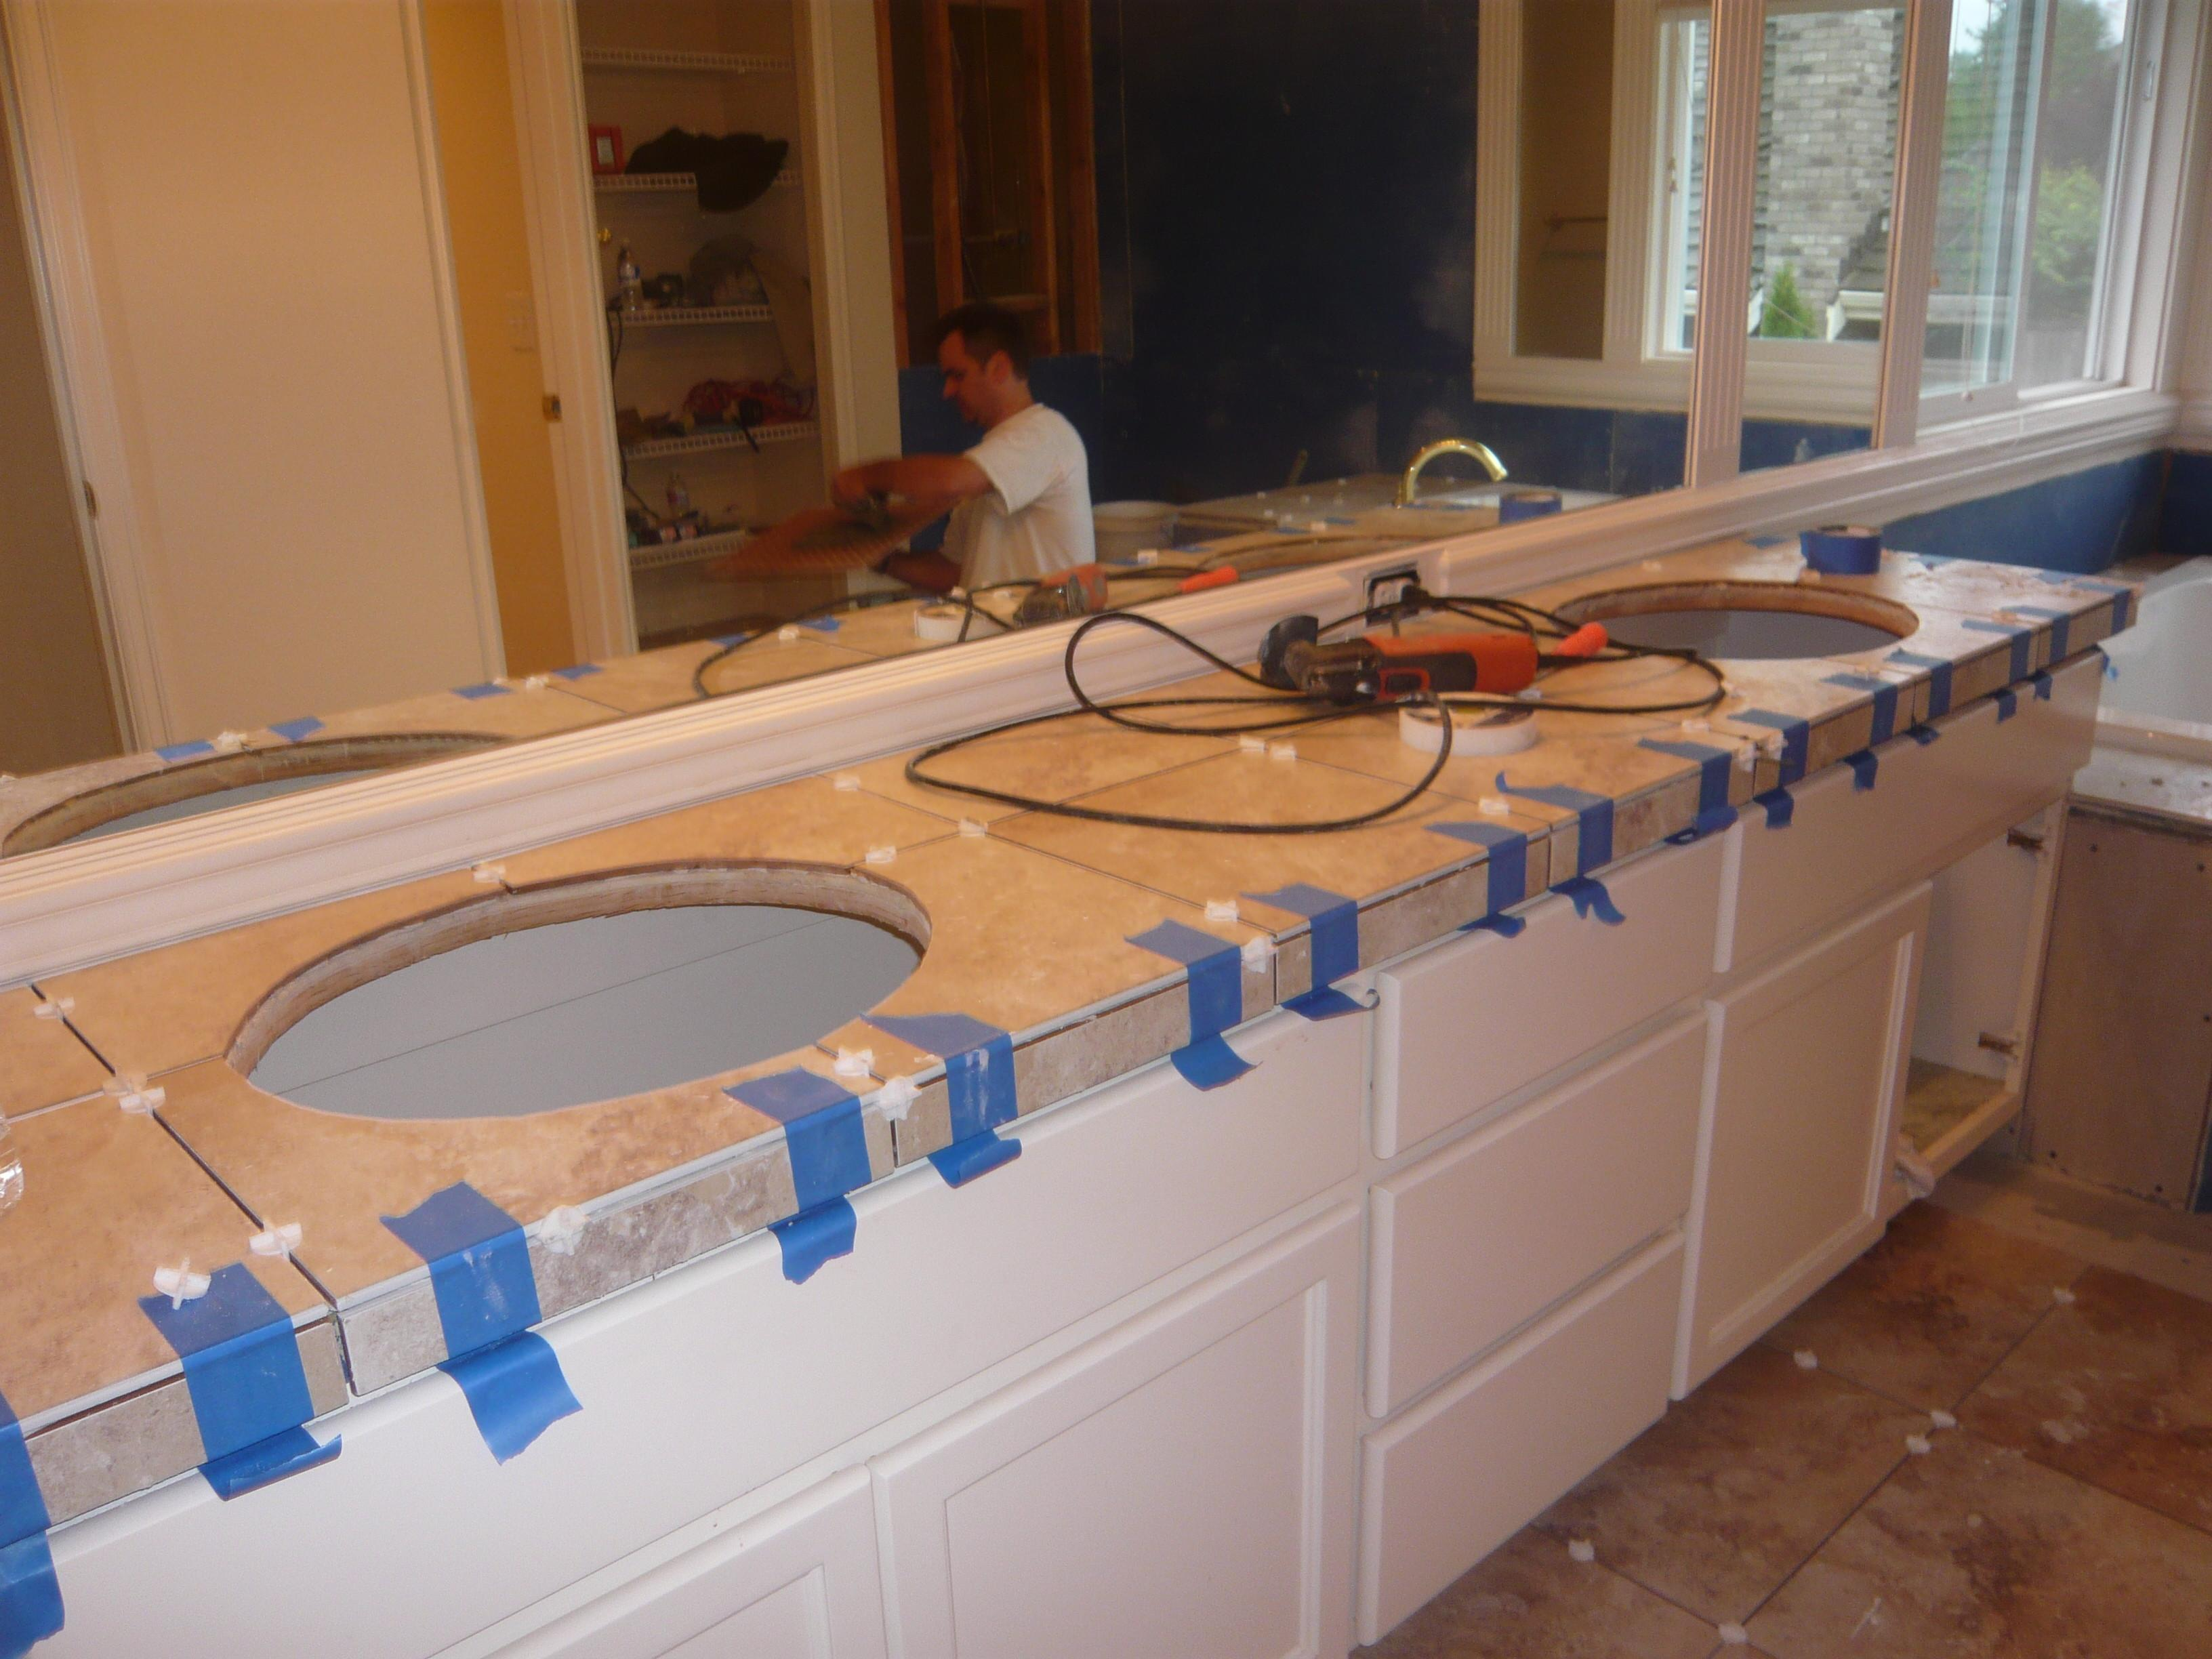 Seattle Grout Tile Installation Now Call 206 310